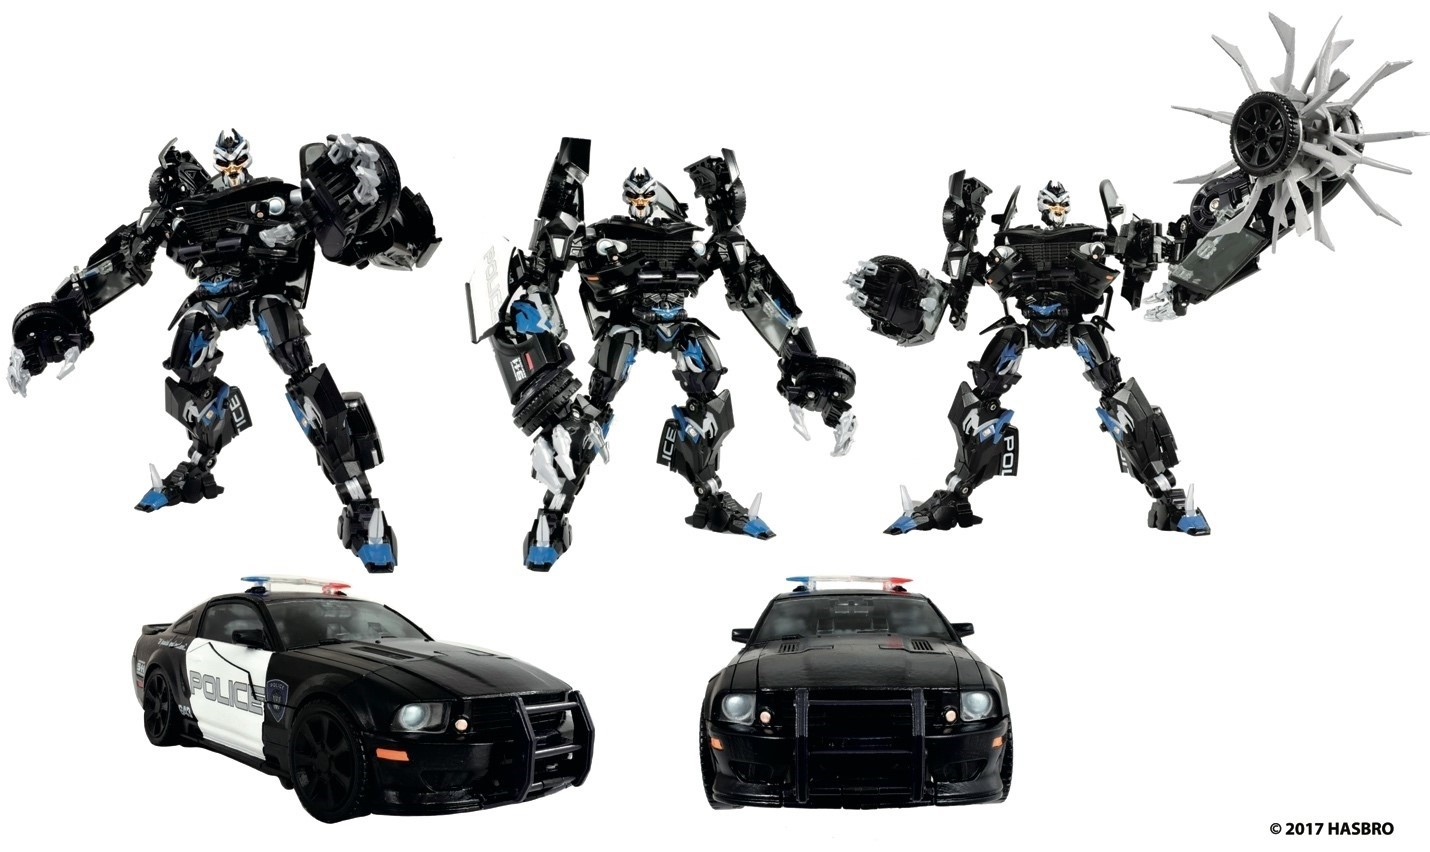 Transformers Masterpiece MPM-5 Barricade Officially Revealed